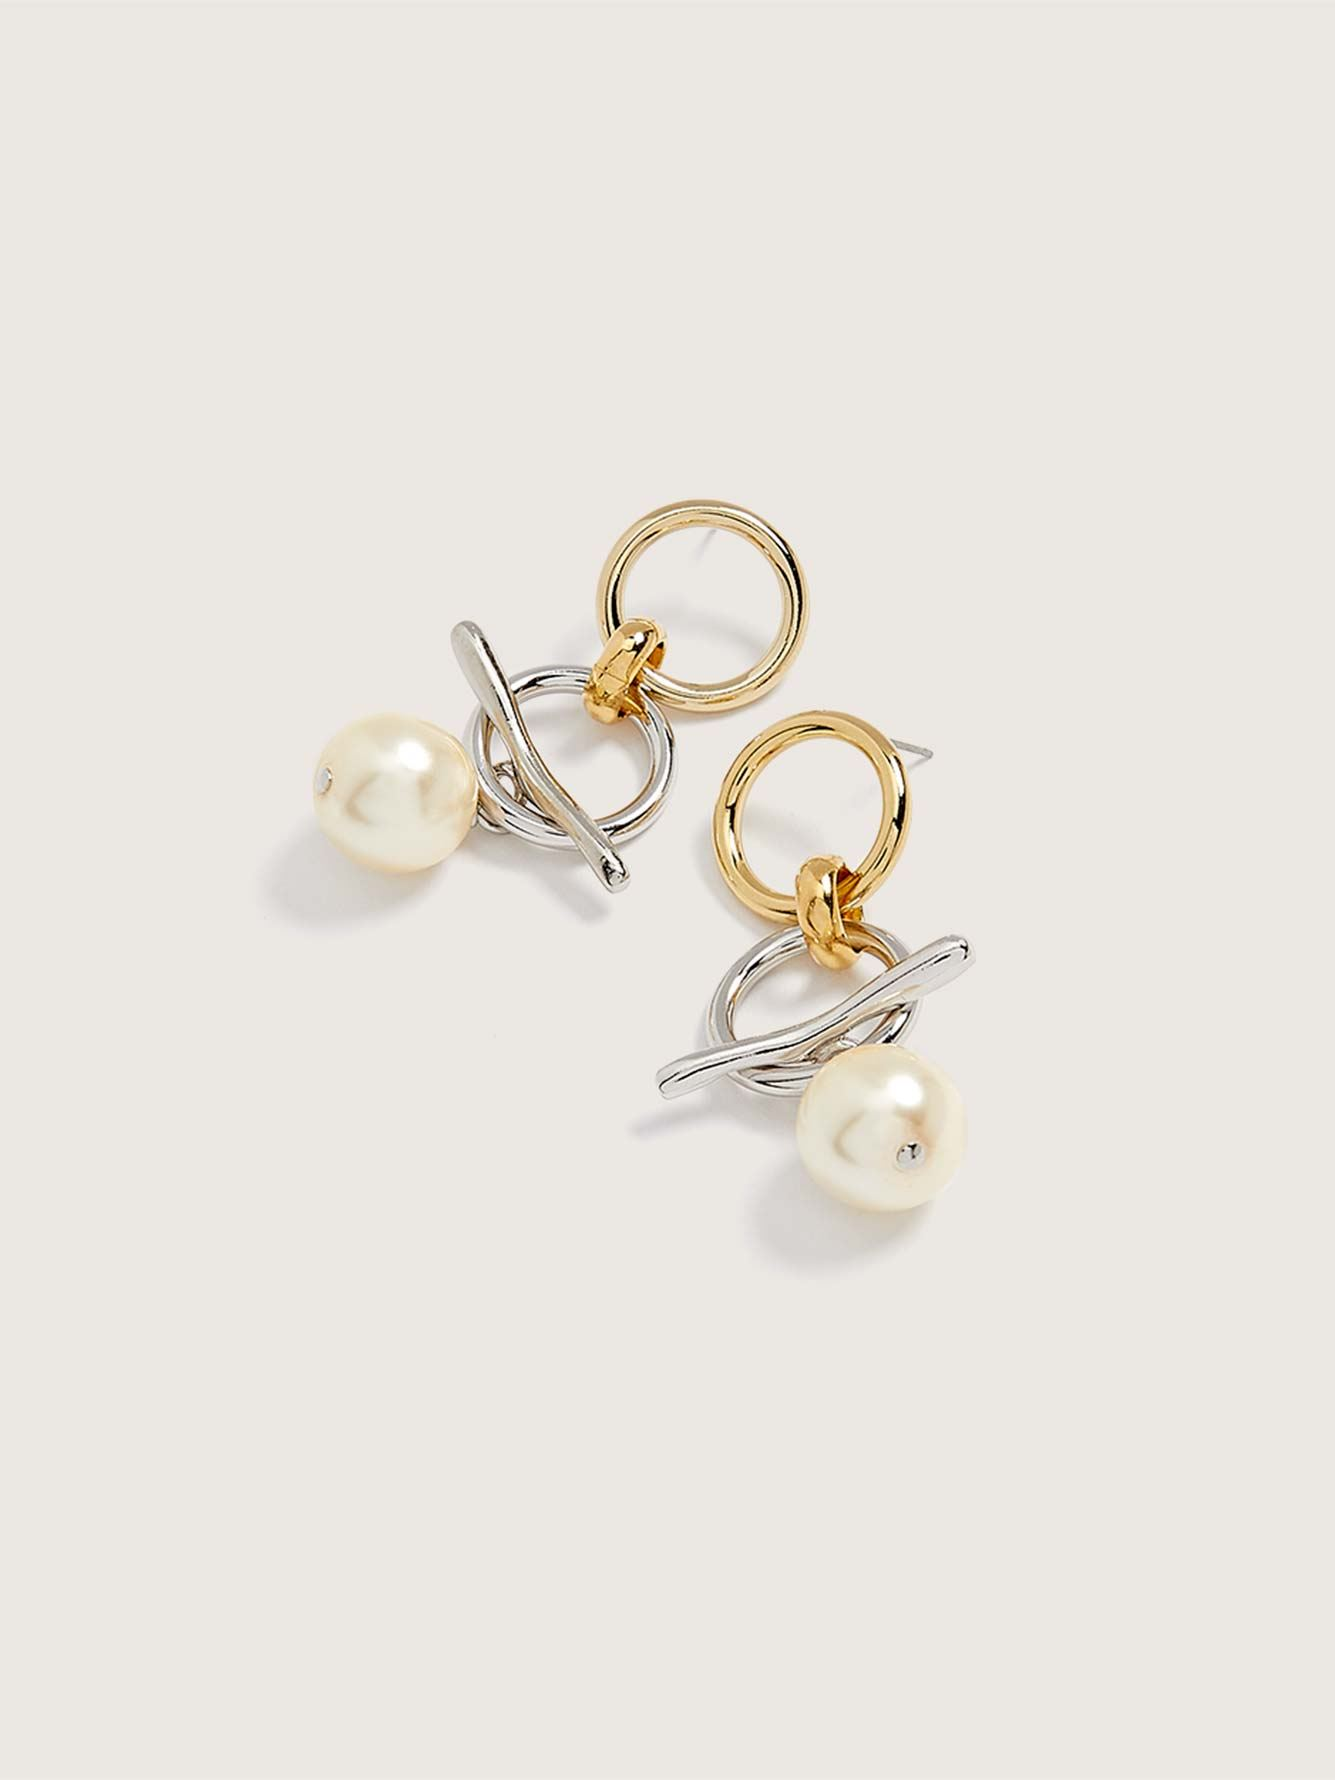 Adelphi 2-in-1 Stud Earrings - Biko